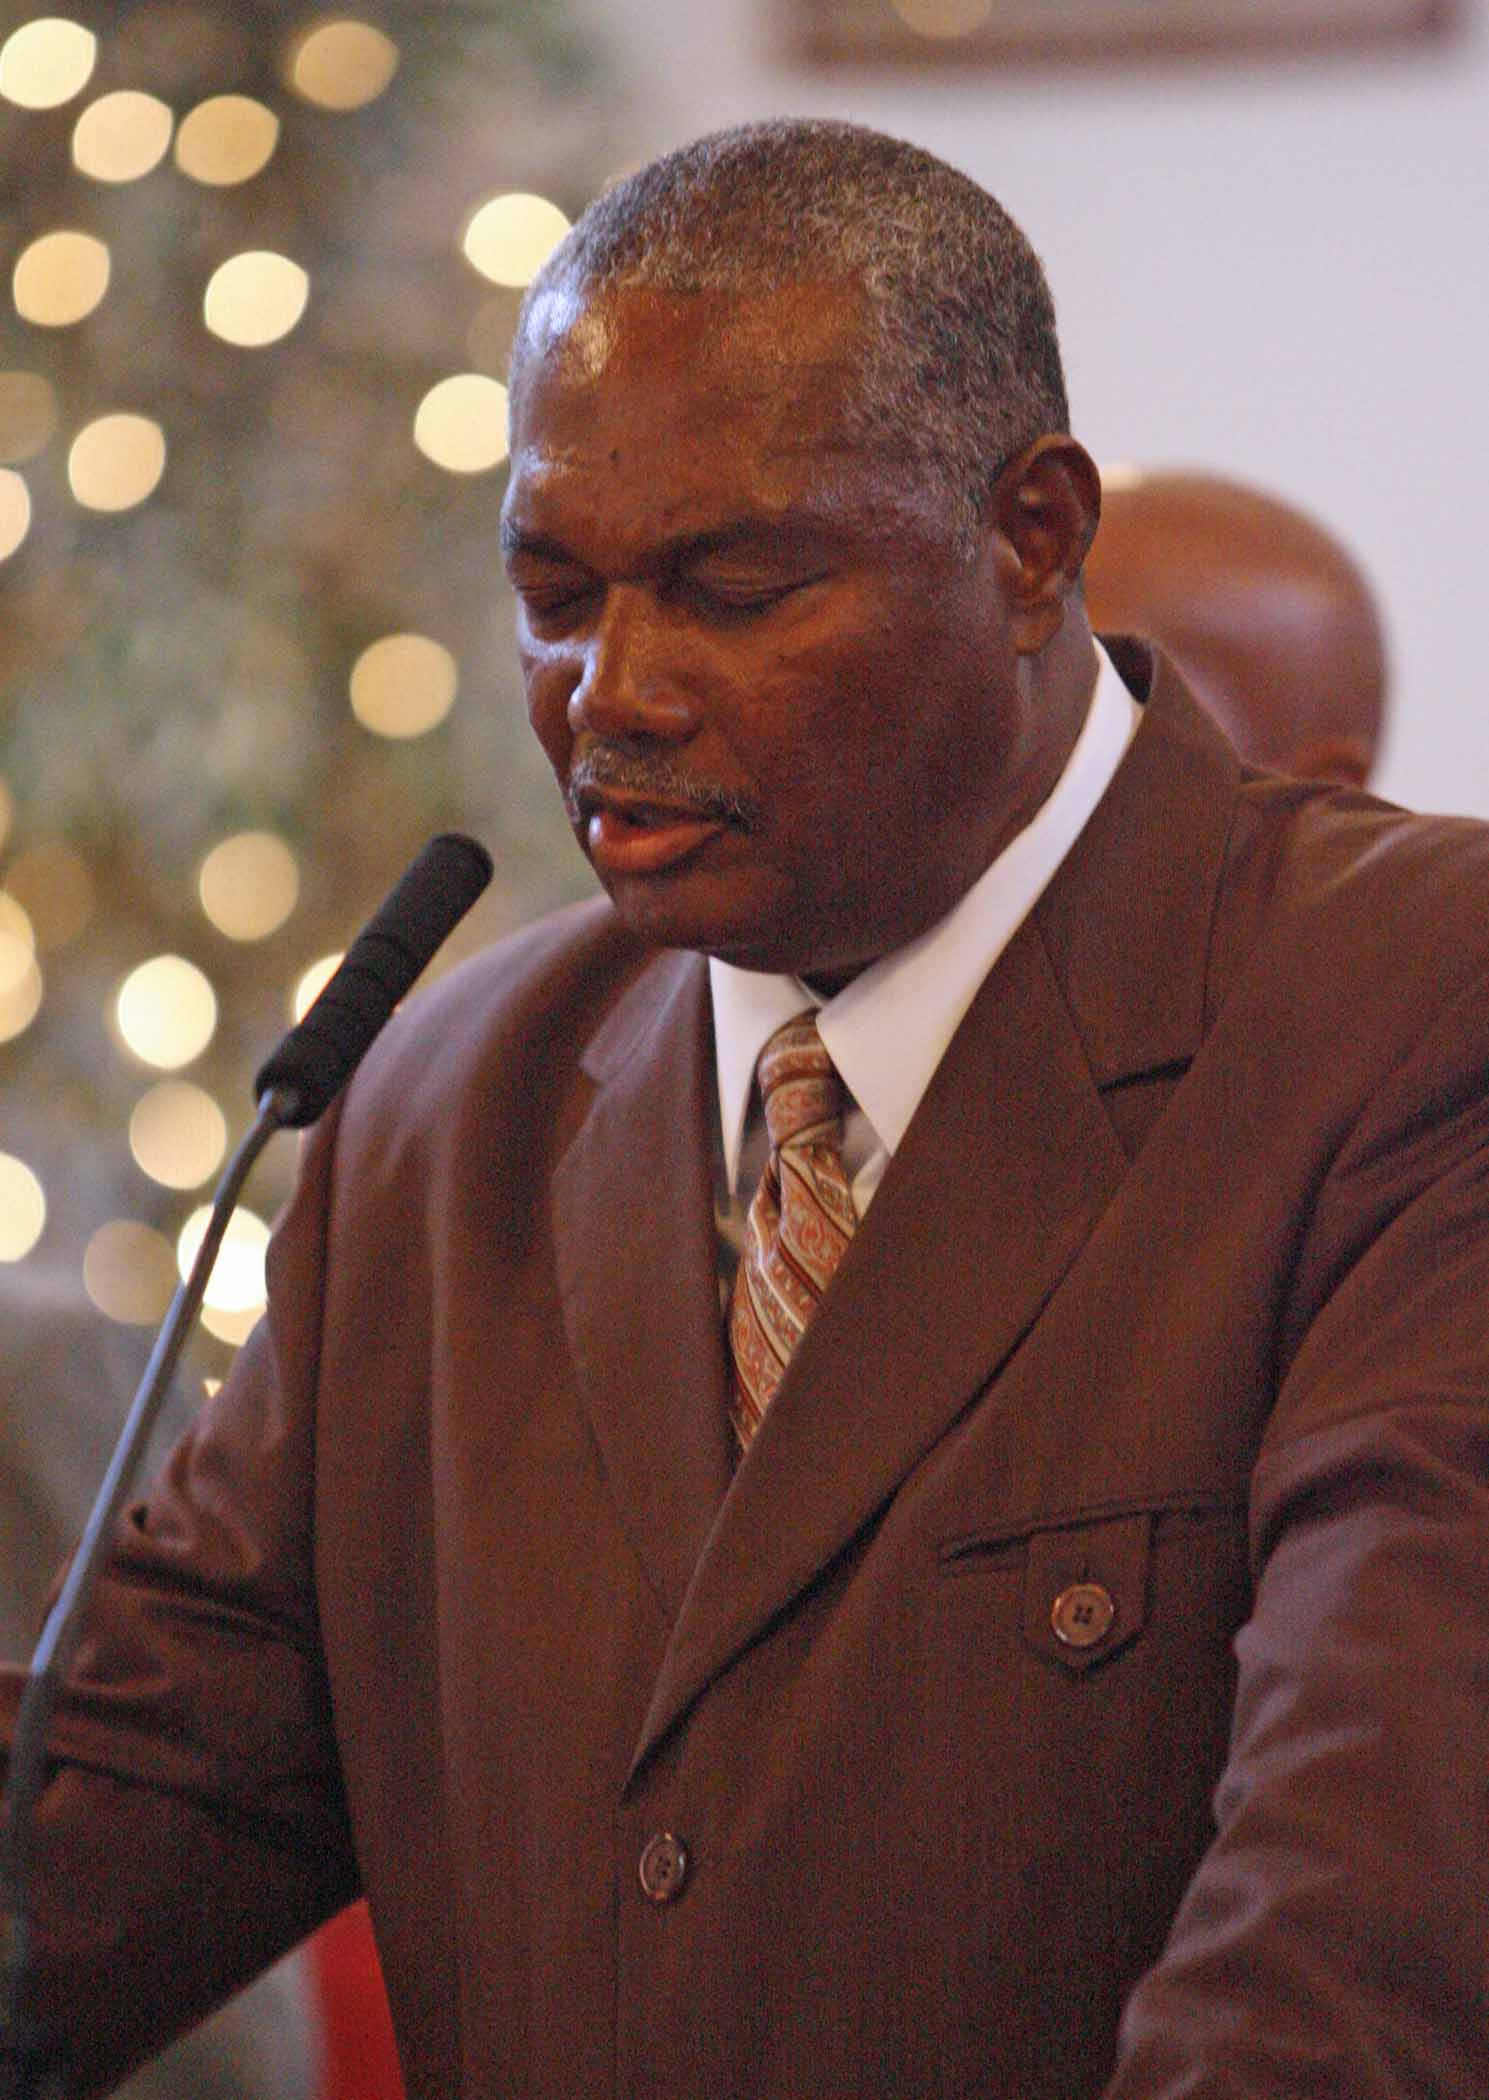 Minister Roy Williams